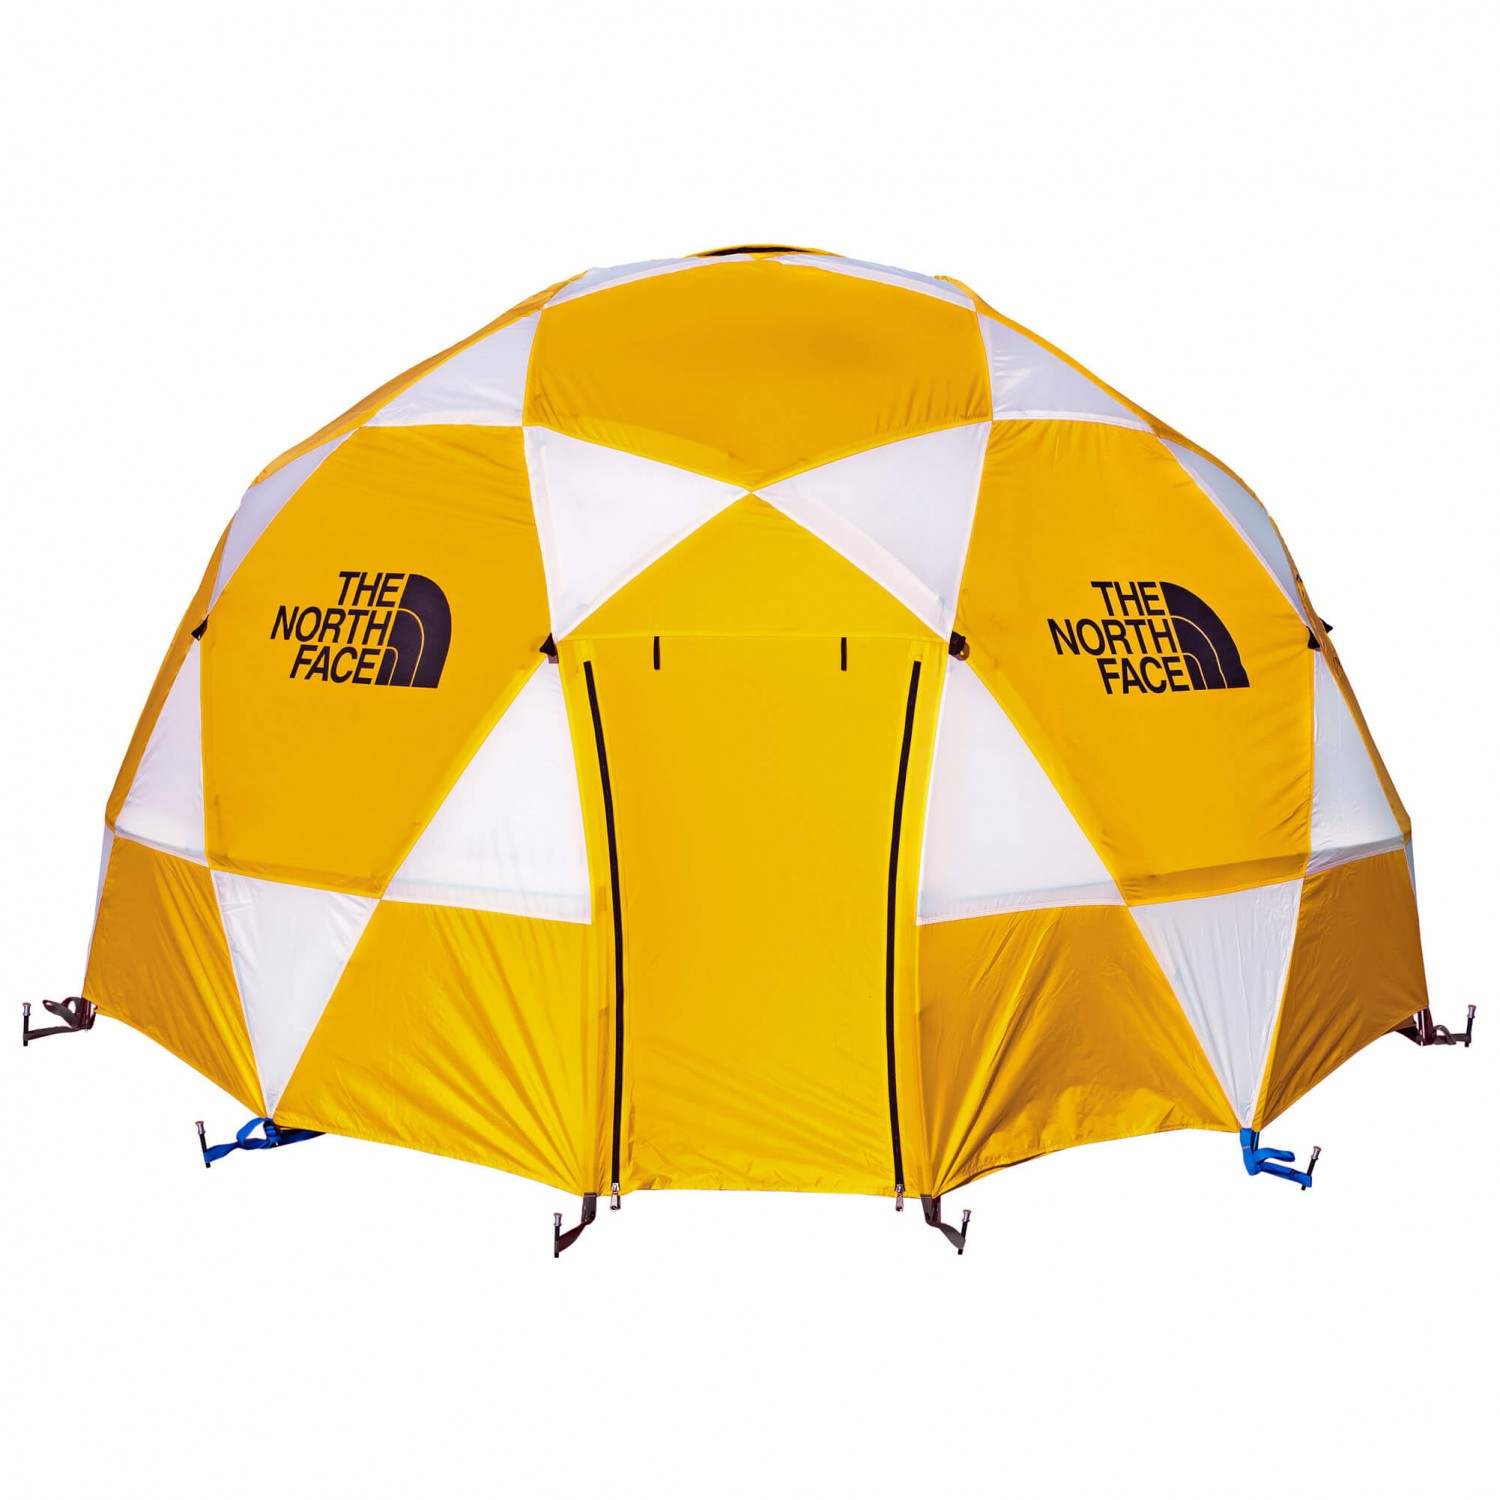 //encrypted-tbn0.gstatic.com/images?qu003dtbnANd9GcTEX6KPX4Czd17ODS5g7gblbbs2GavoOxfRHtdQN7MjnKhWqRN2vQ & The North Face - 2-Meter Dome - Group tent - Gold / White / Black